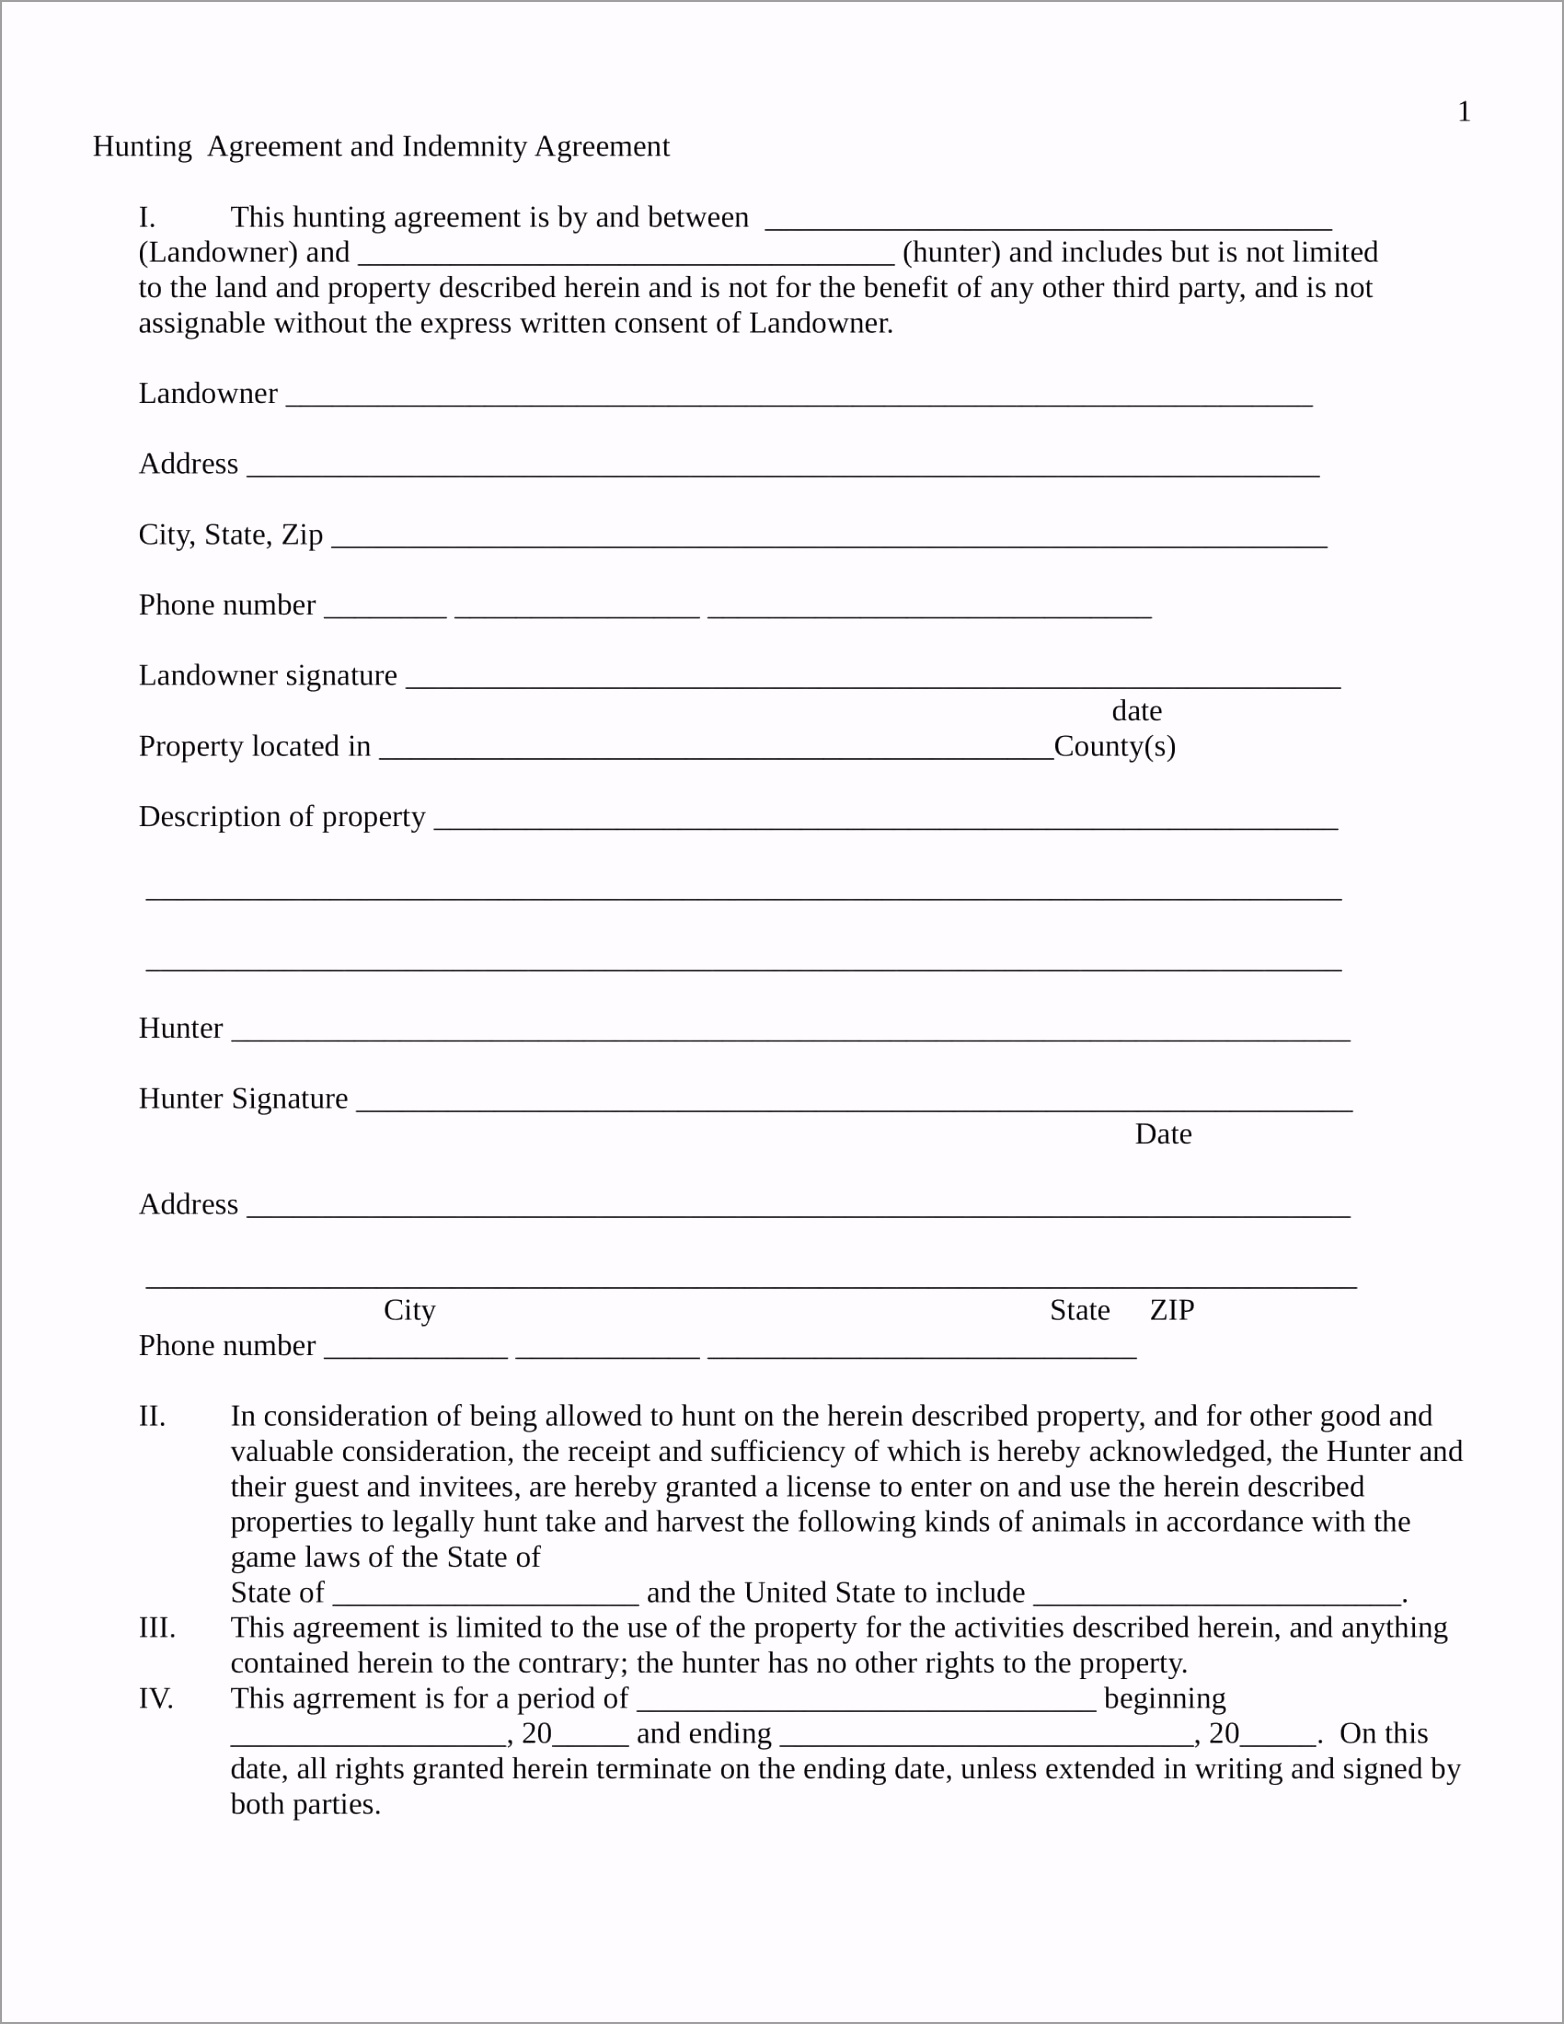 Hunting Agreement Contract Form in DOC 1 wxwue